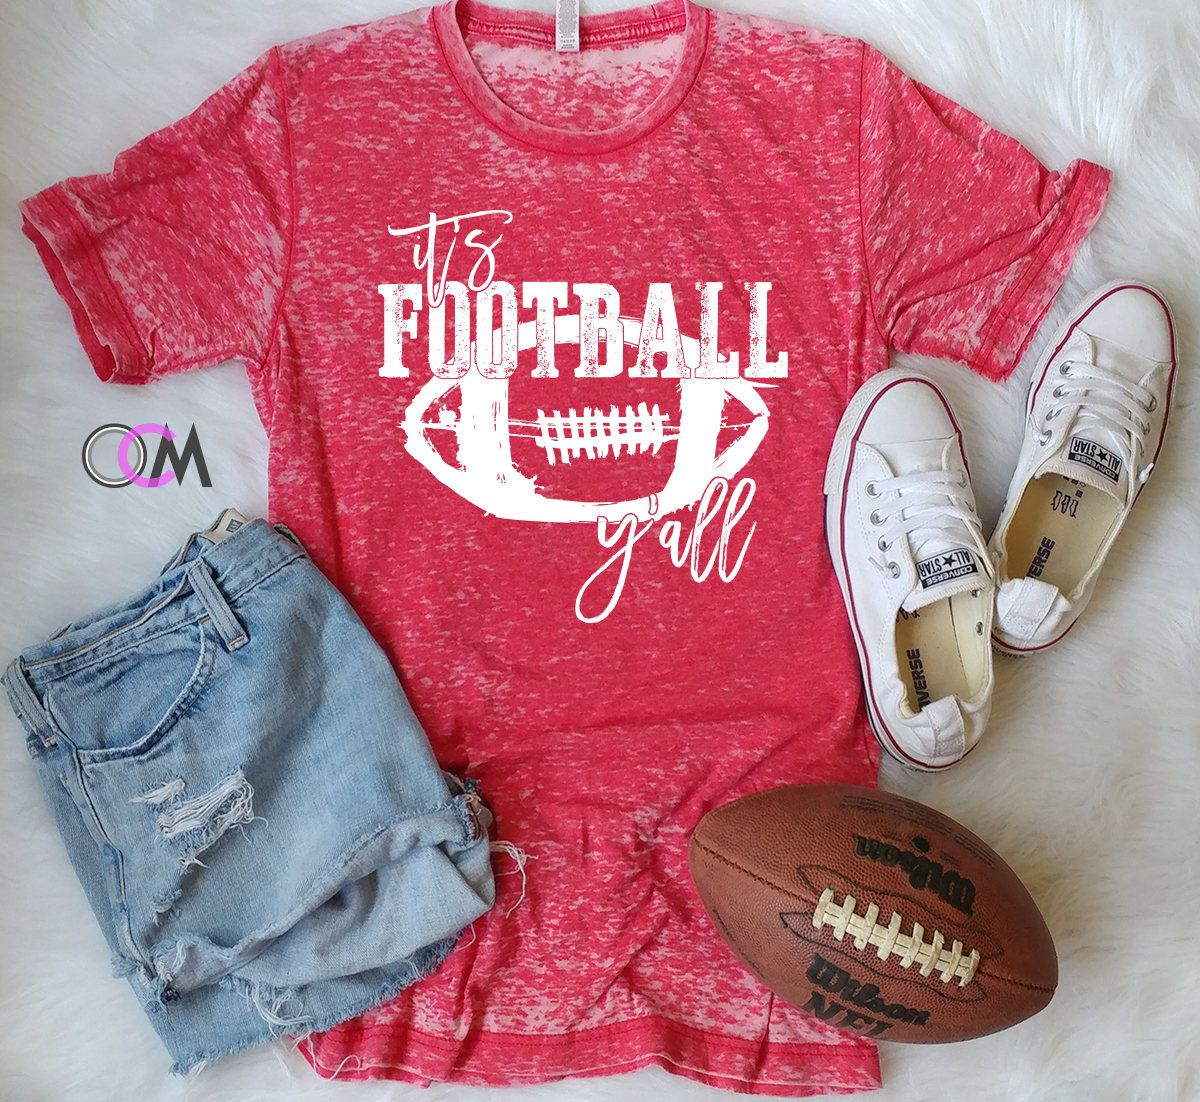 43b6c39fc It's Football Y'all, Football Shirt, Football Mama Shirt - Eroded 24.99